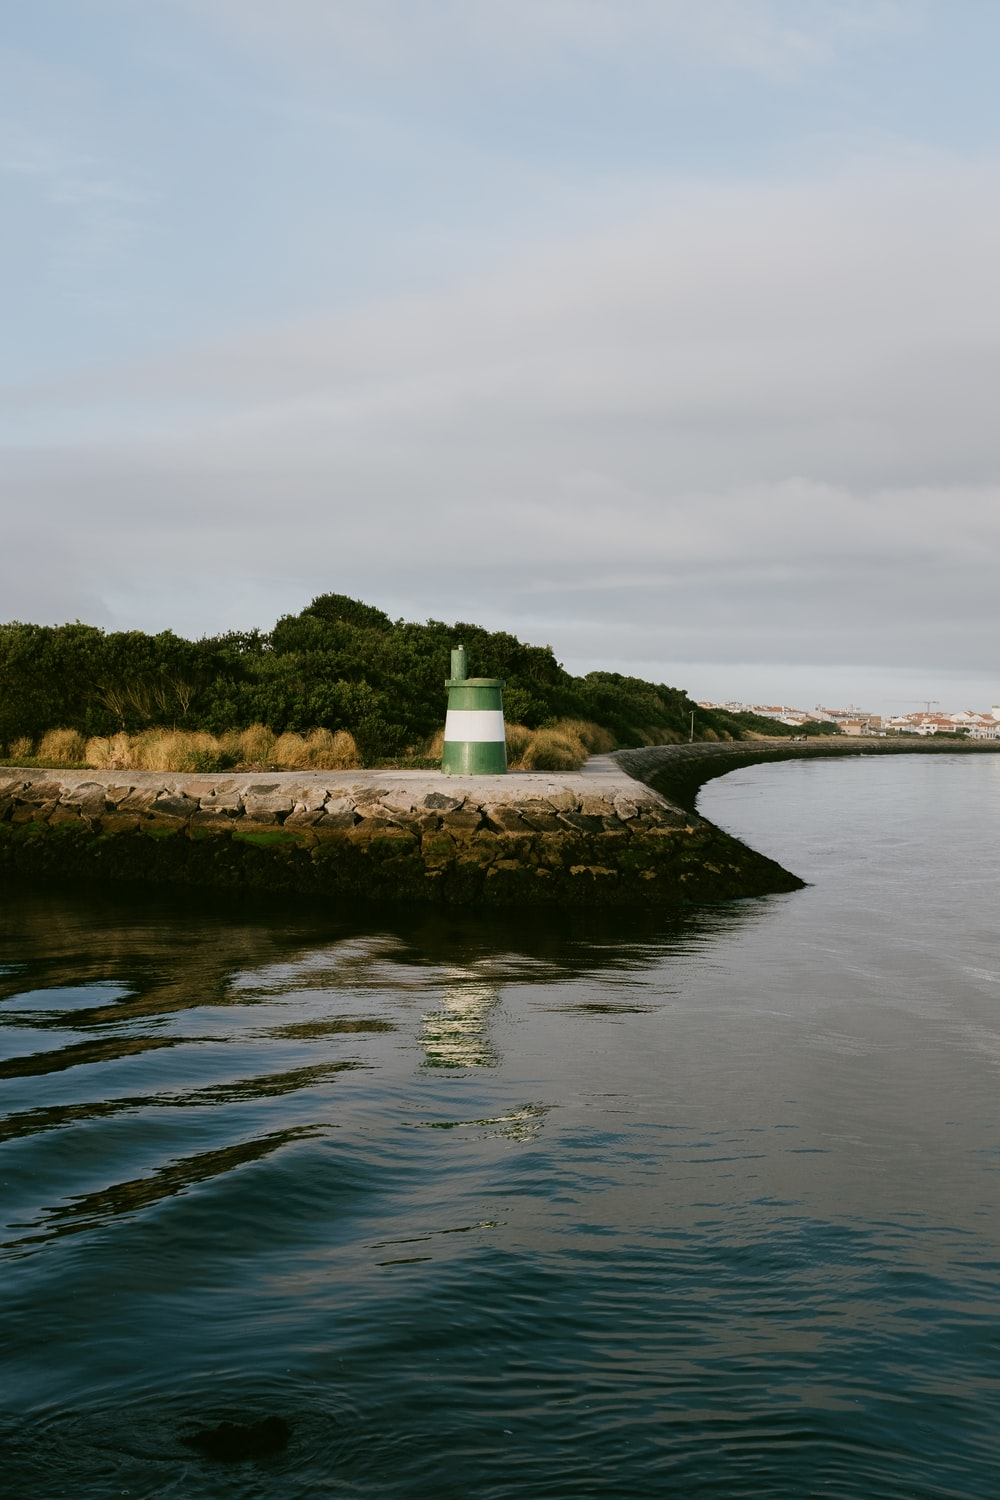 white lighthouse near body of water during daytime